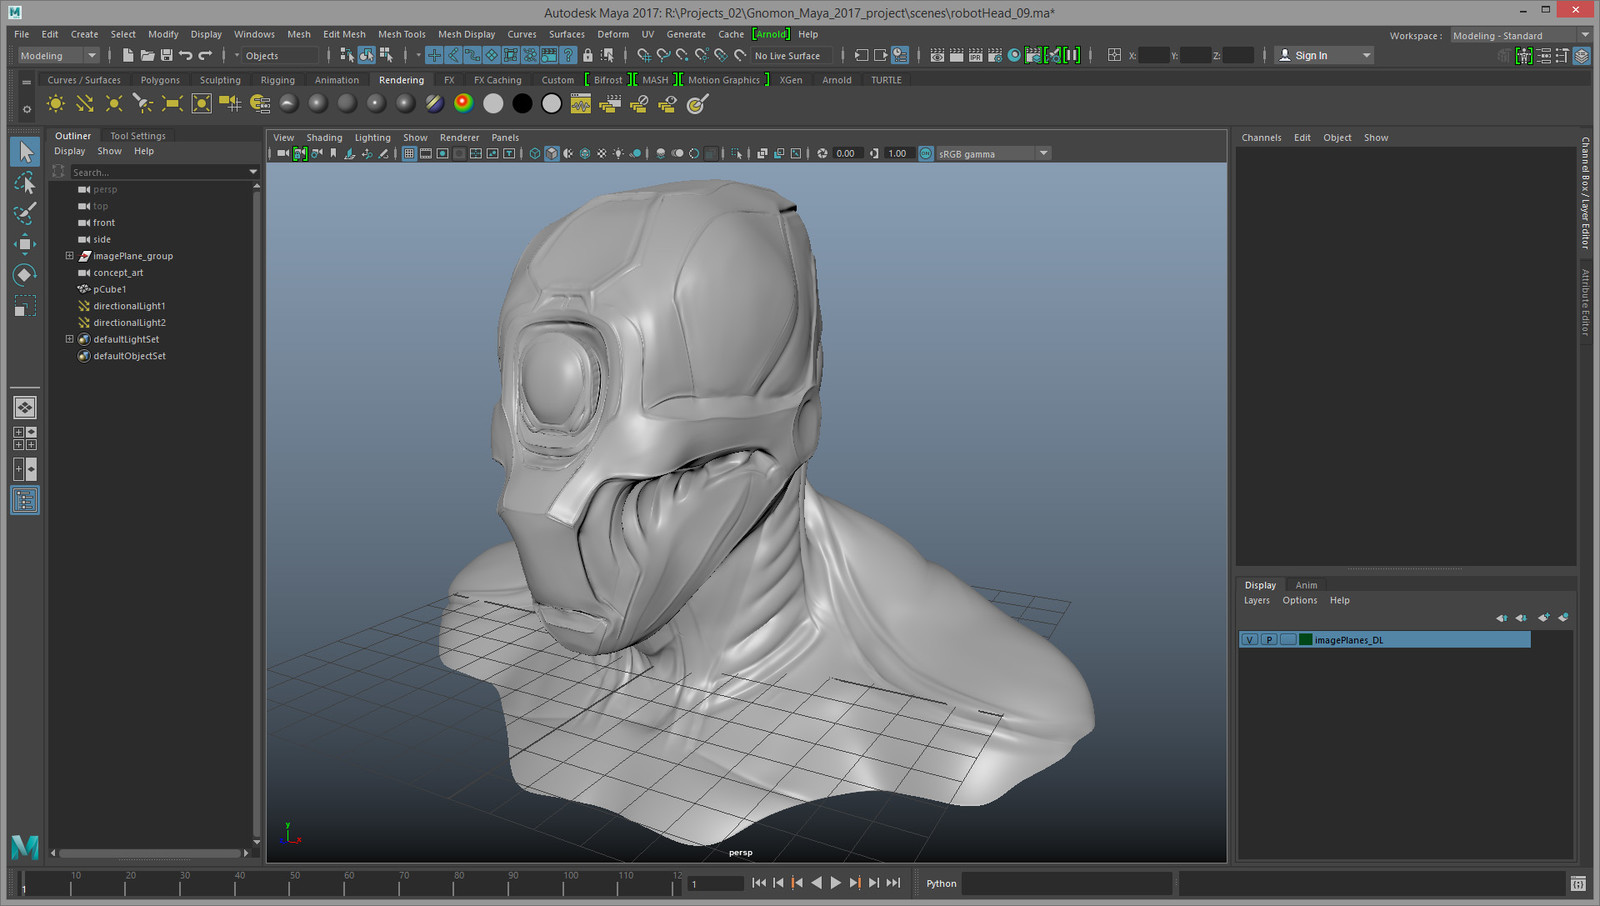 Early sculpt in Maya 2017 (yes the sculpting tools are getting better!)